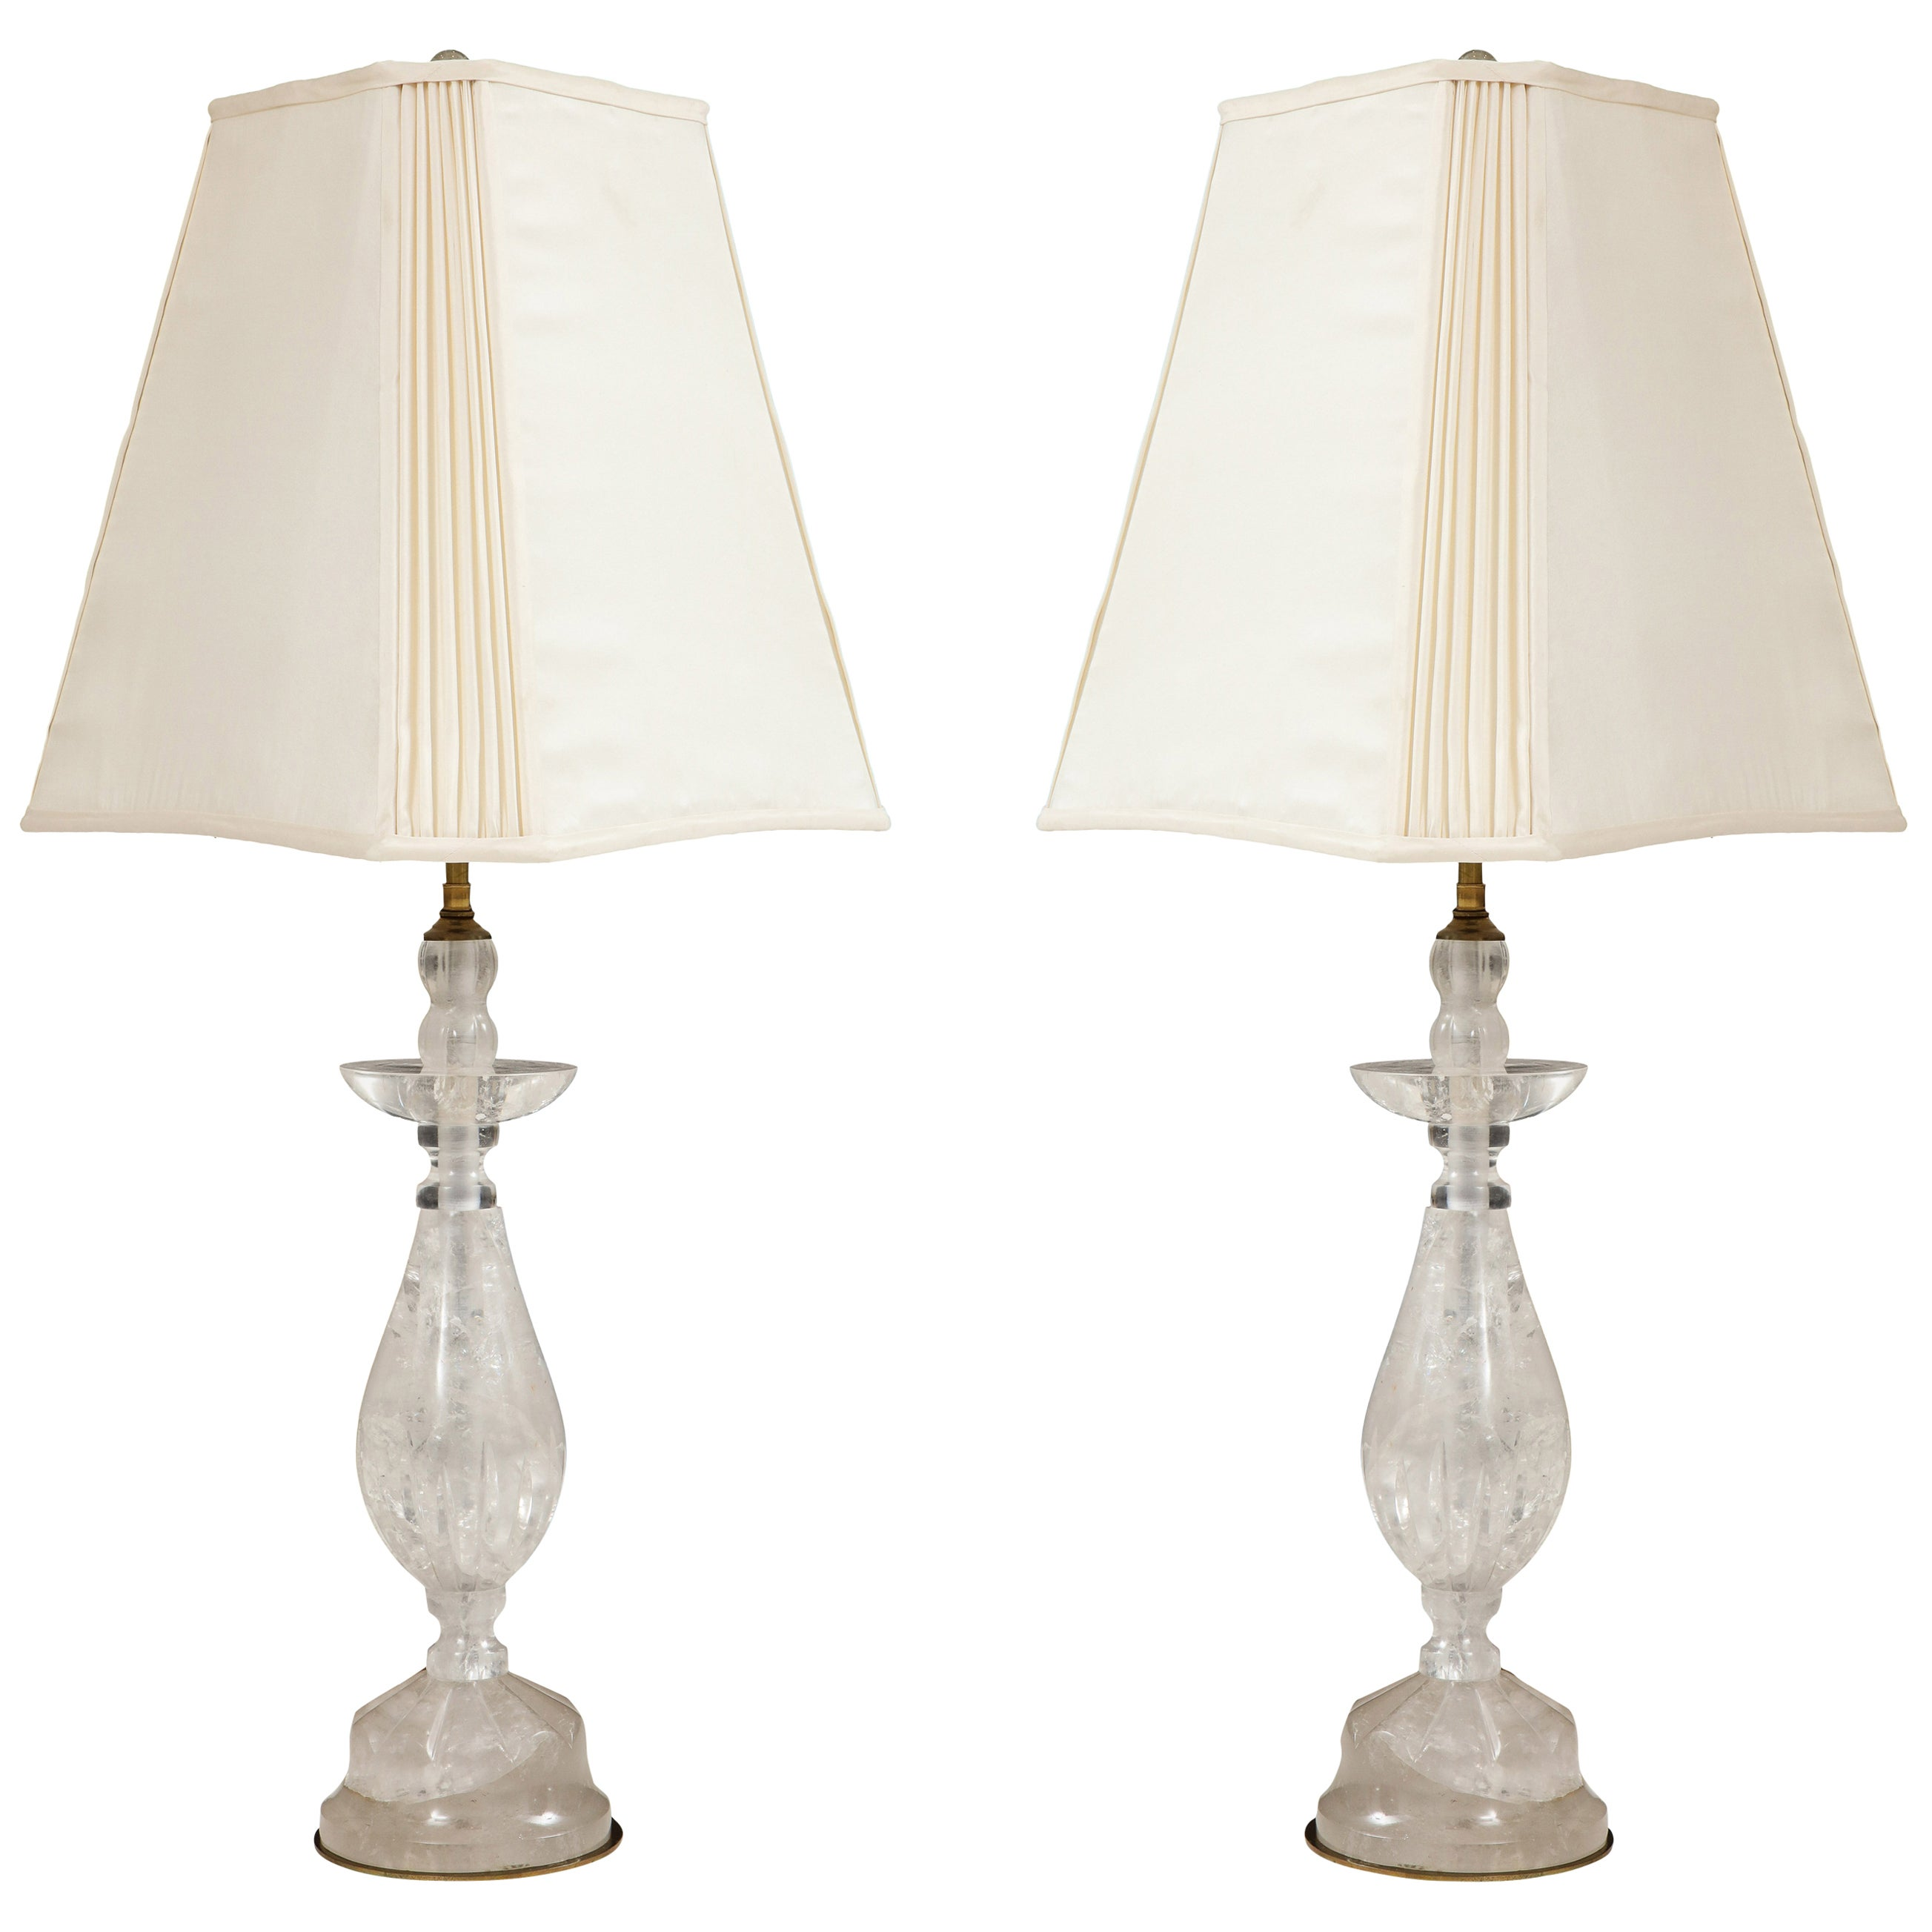 Pair of Baluster Form Rock Crystal Lamps